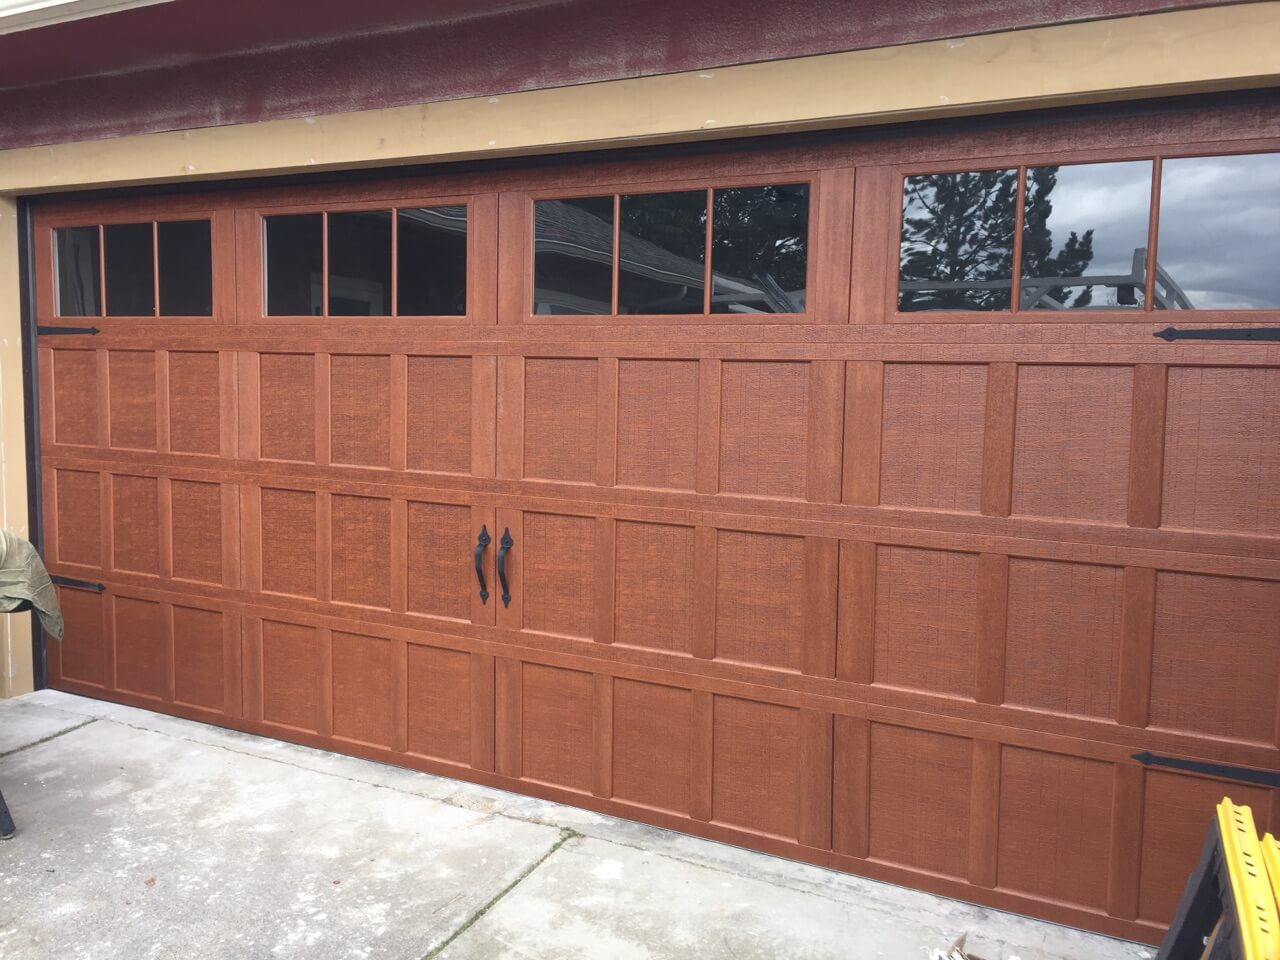 Old school wooden garage doors